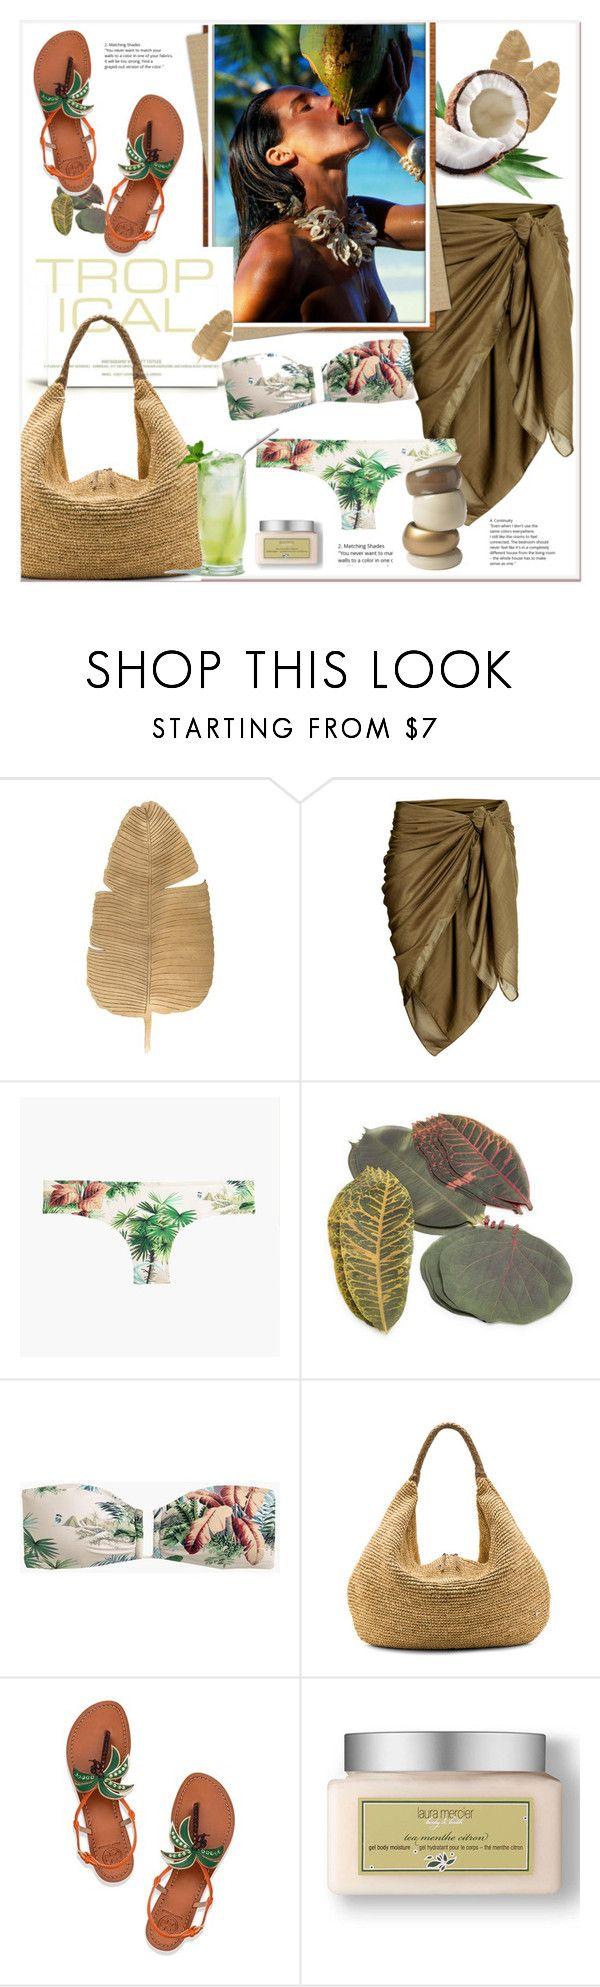 """#tropicalvacation"" by stylemeup-649 ❤ liked on Polyvore featuring J.Crew, Sur La Table, House of Fraser, Flora Bella, Tory Burch and Laura Mercier"